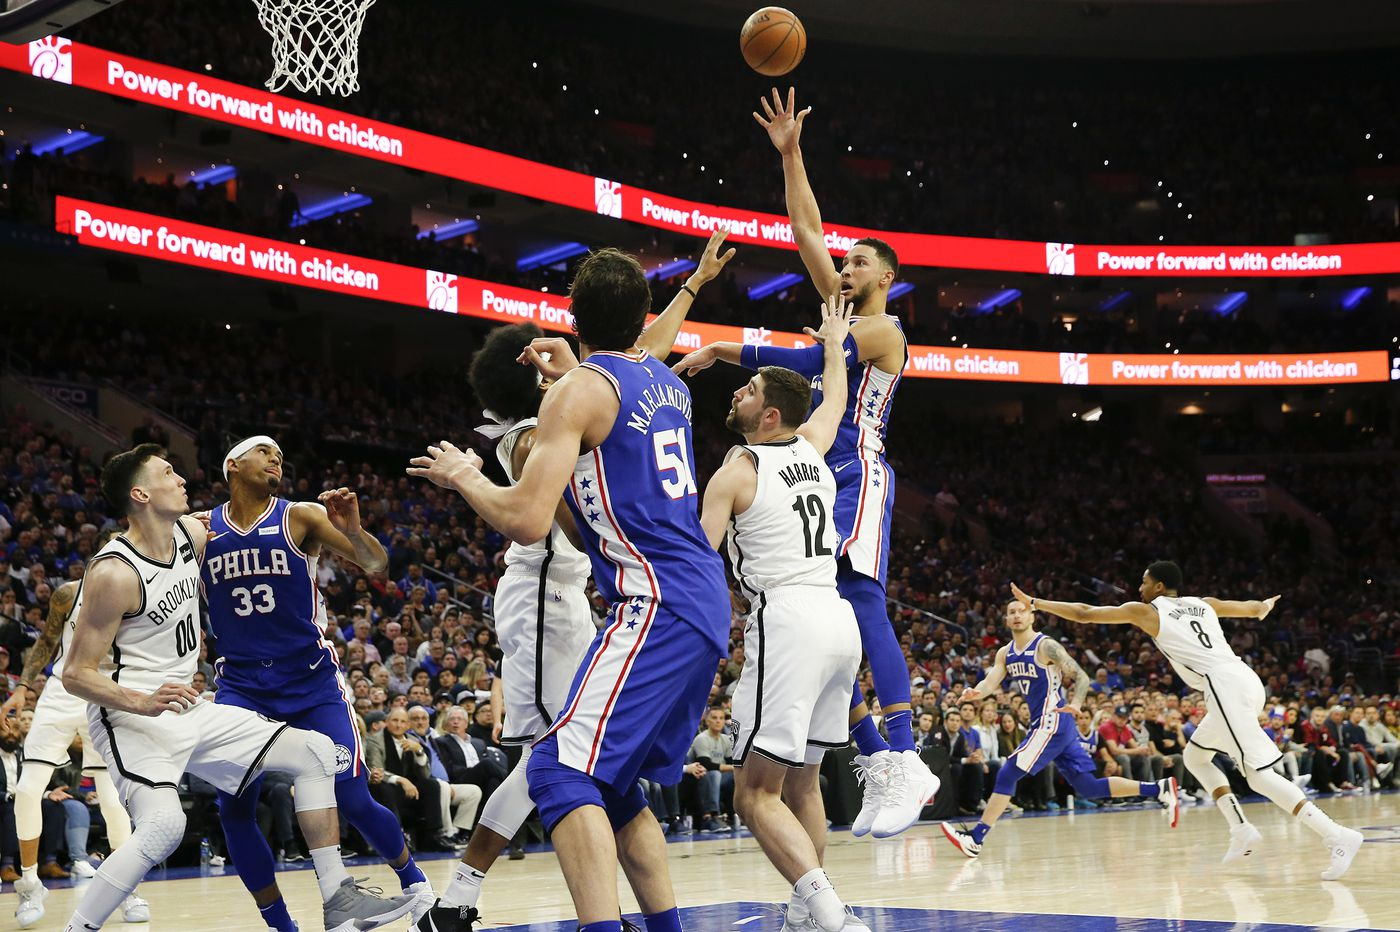 Sixers use dominating third quarter to defeat Nets, tie series